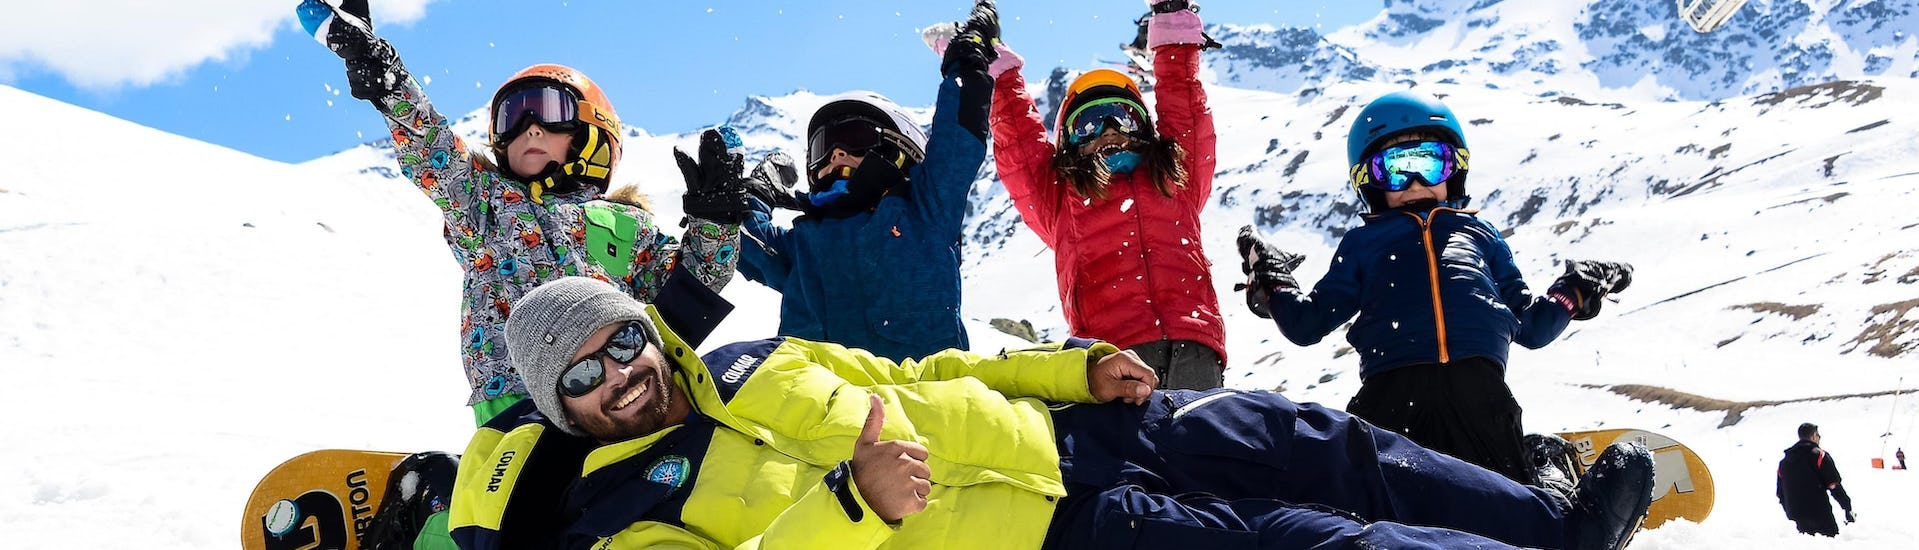 Happy children during snowboarding lessons in the ski school Prosneige Val d'Isère located in the ski resort Val d'Isère.